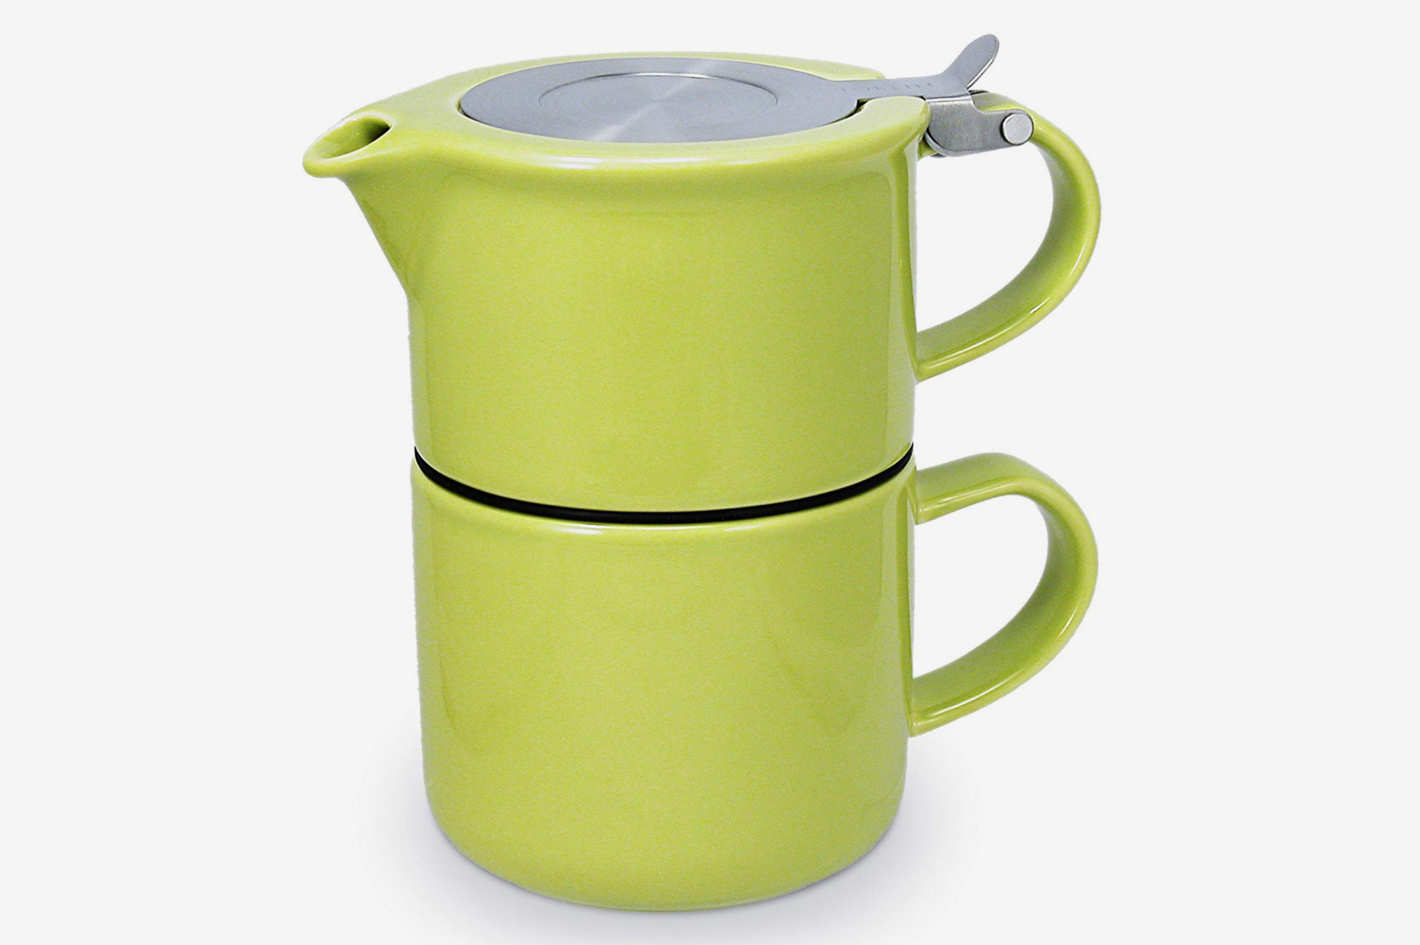 ForLife Tea for One With Infuser